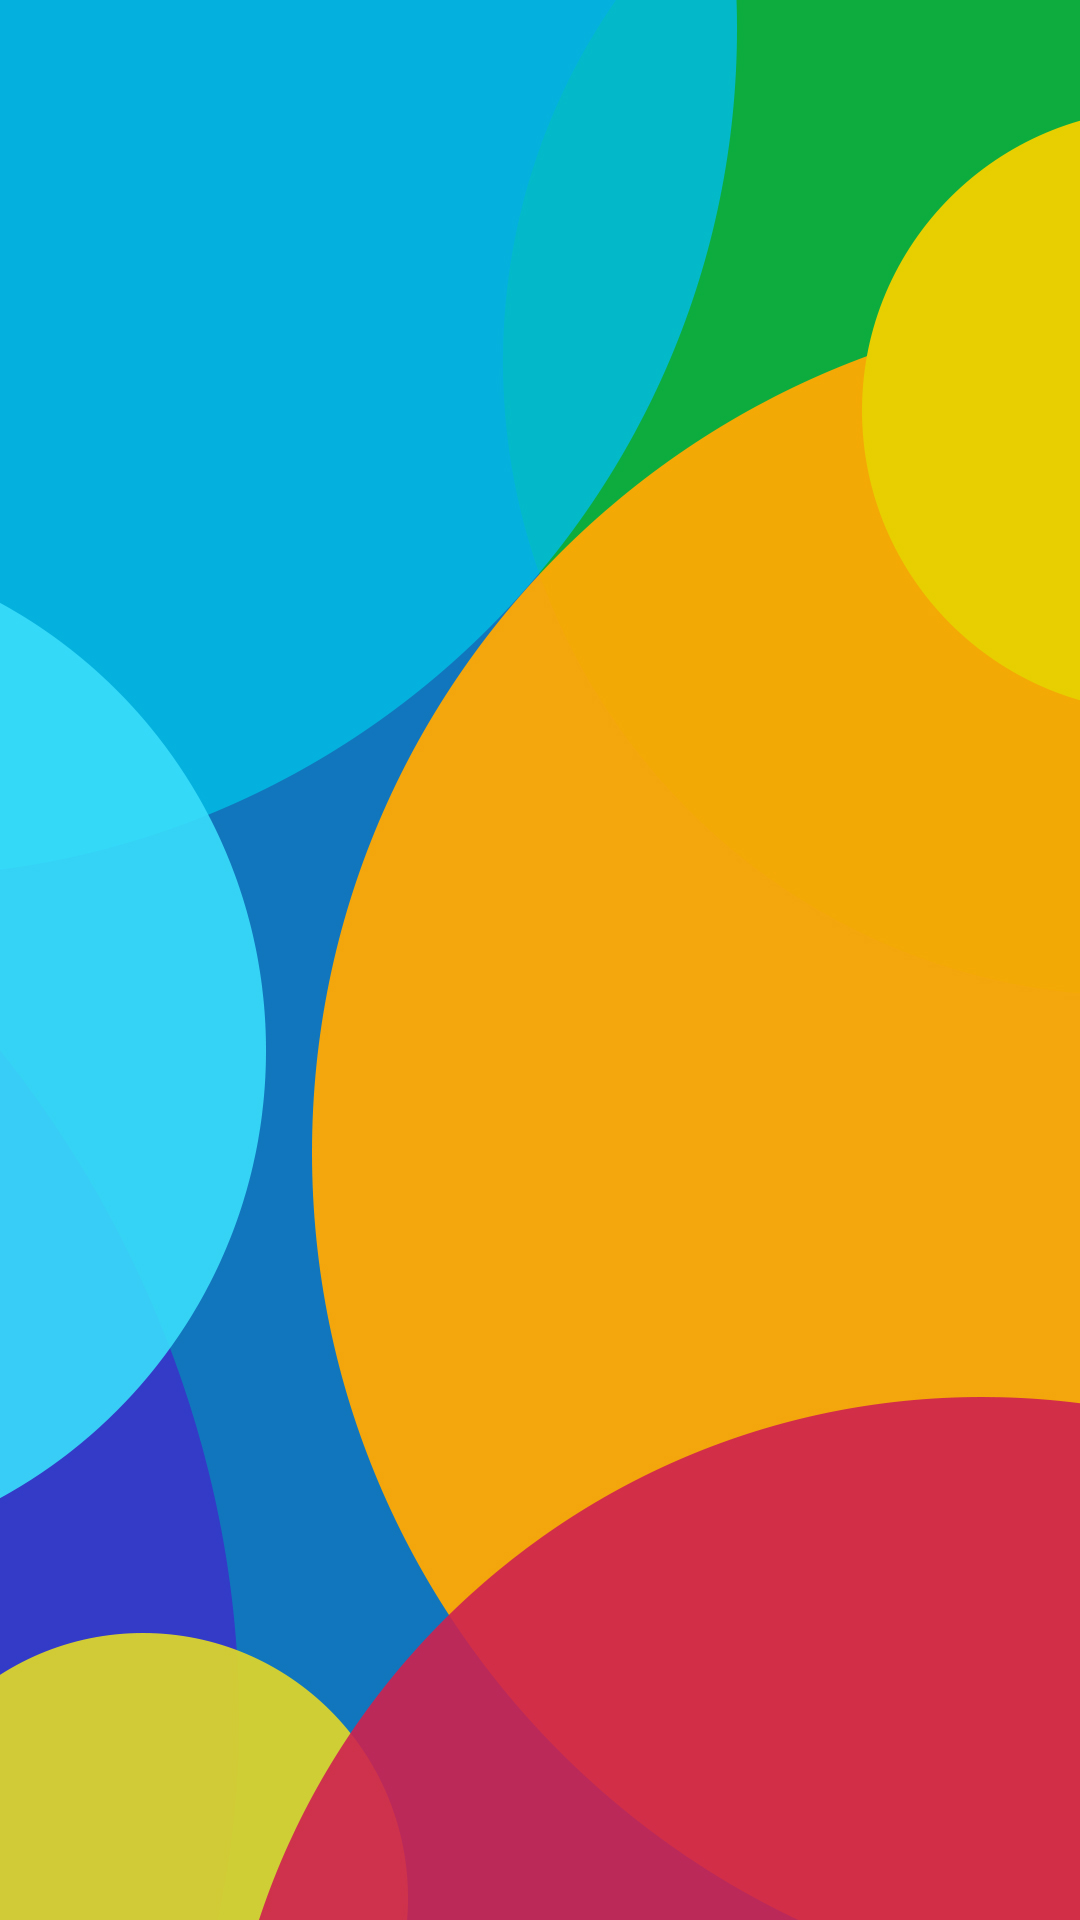 Android Lollipop Hd Wallpaper Image Source